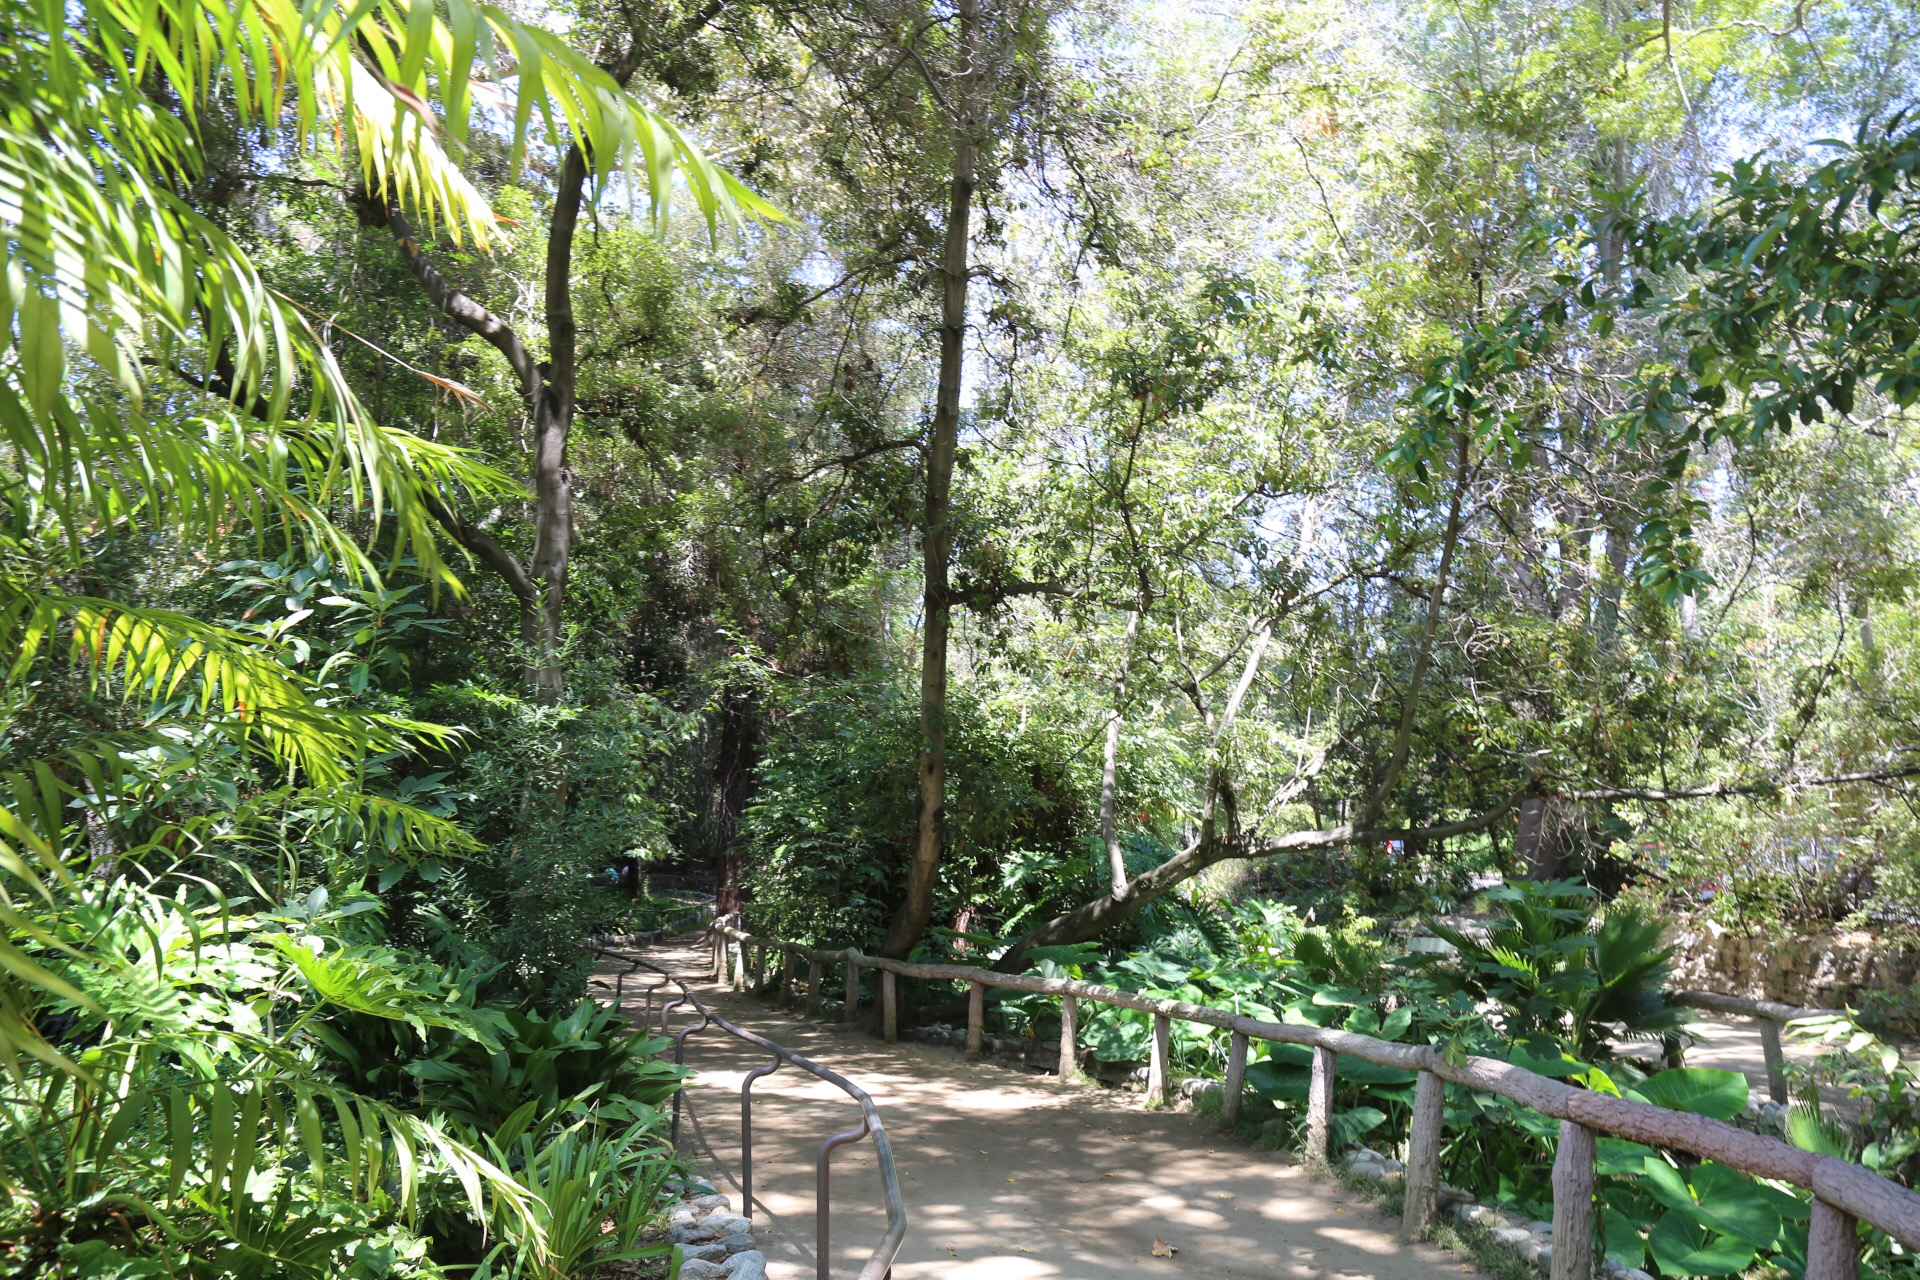 Ferndell Trail at the Western/Los Feliz Griffith Park Entrance.